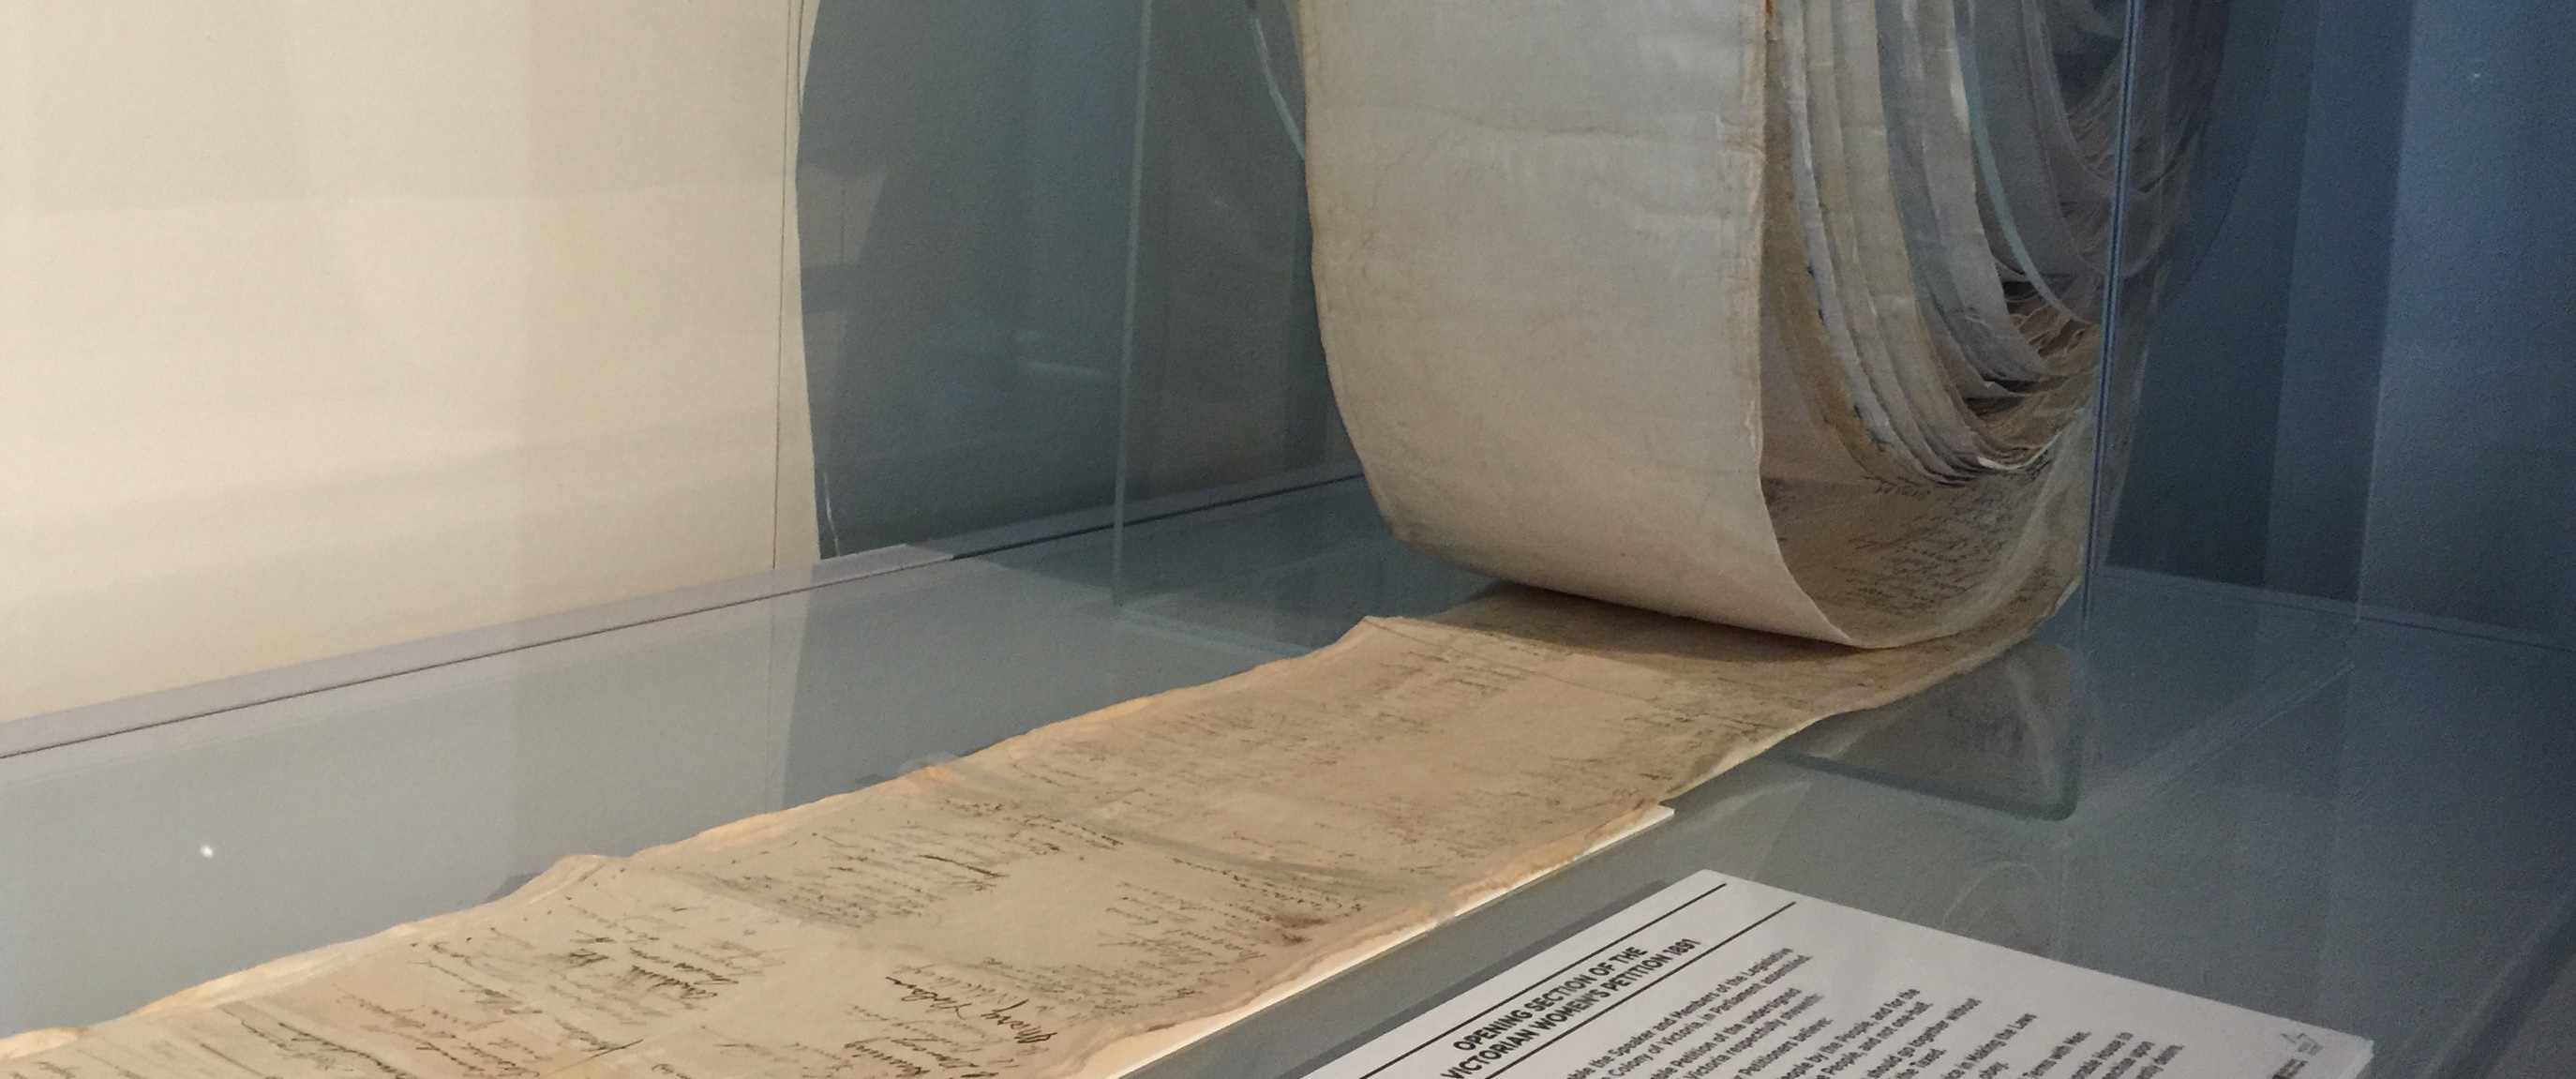 Suffrage Petition on Display at M.A.D.E - BDGS Photo